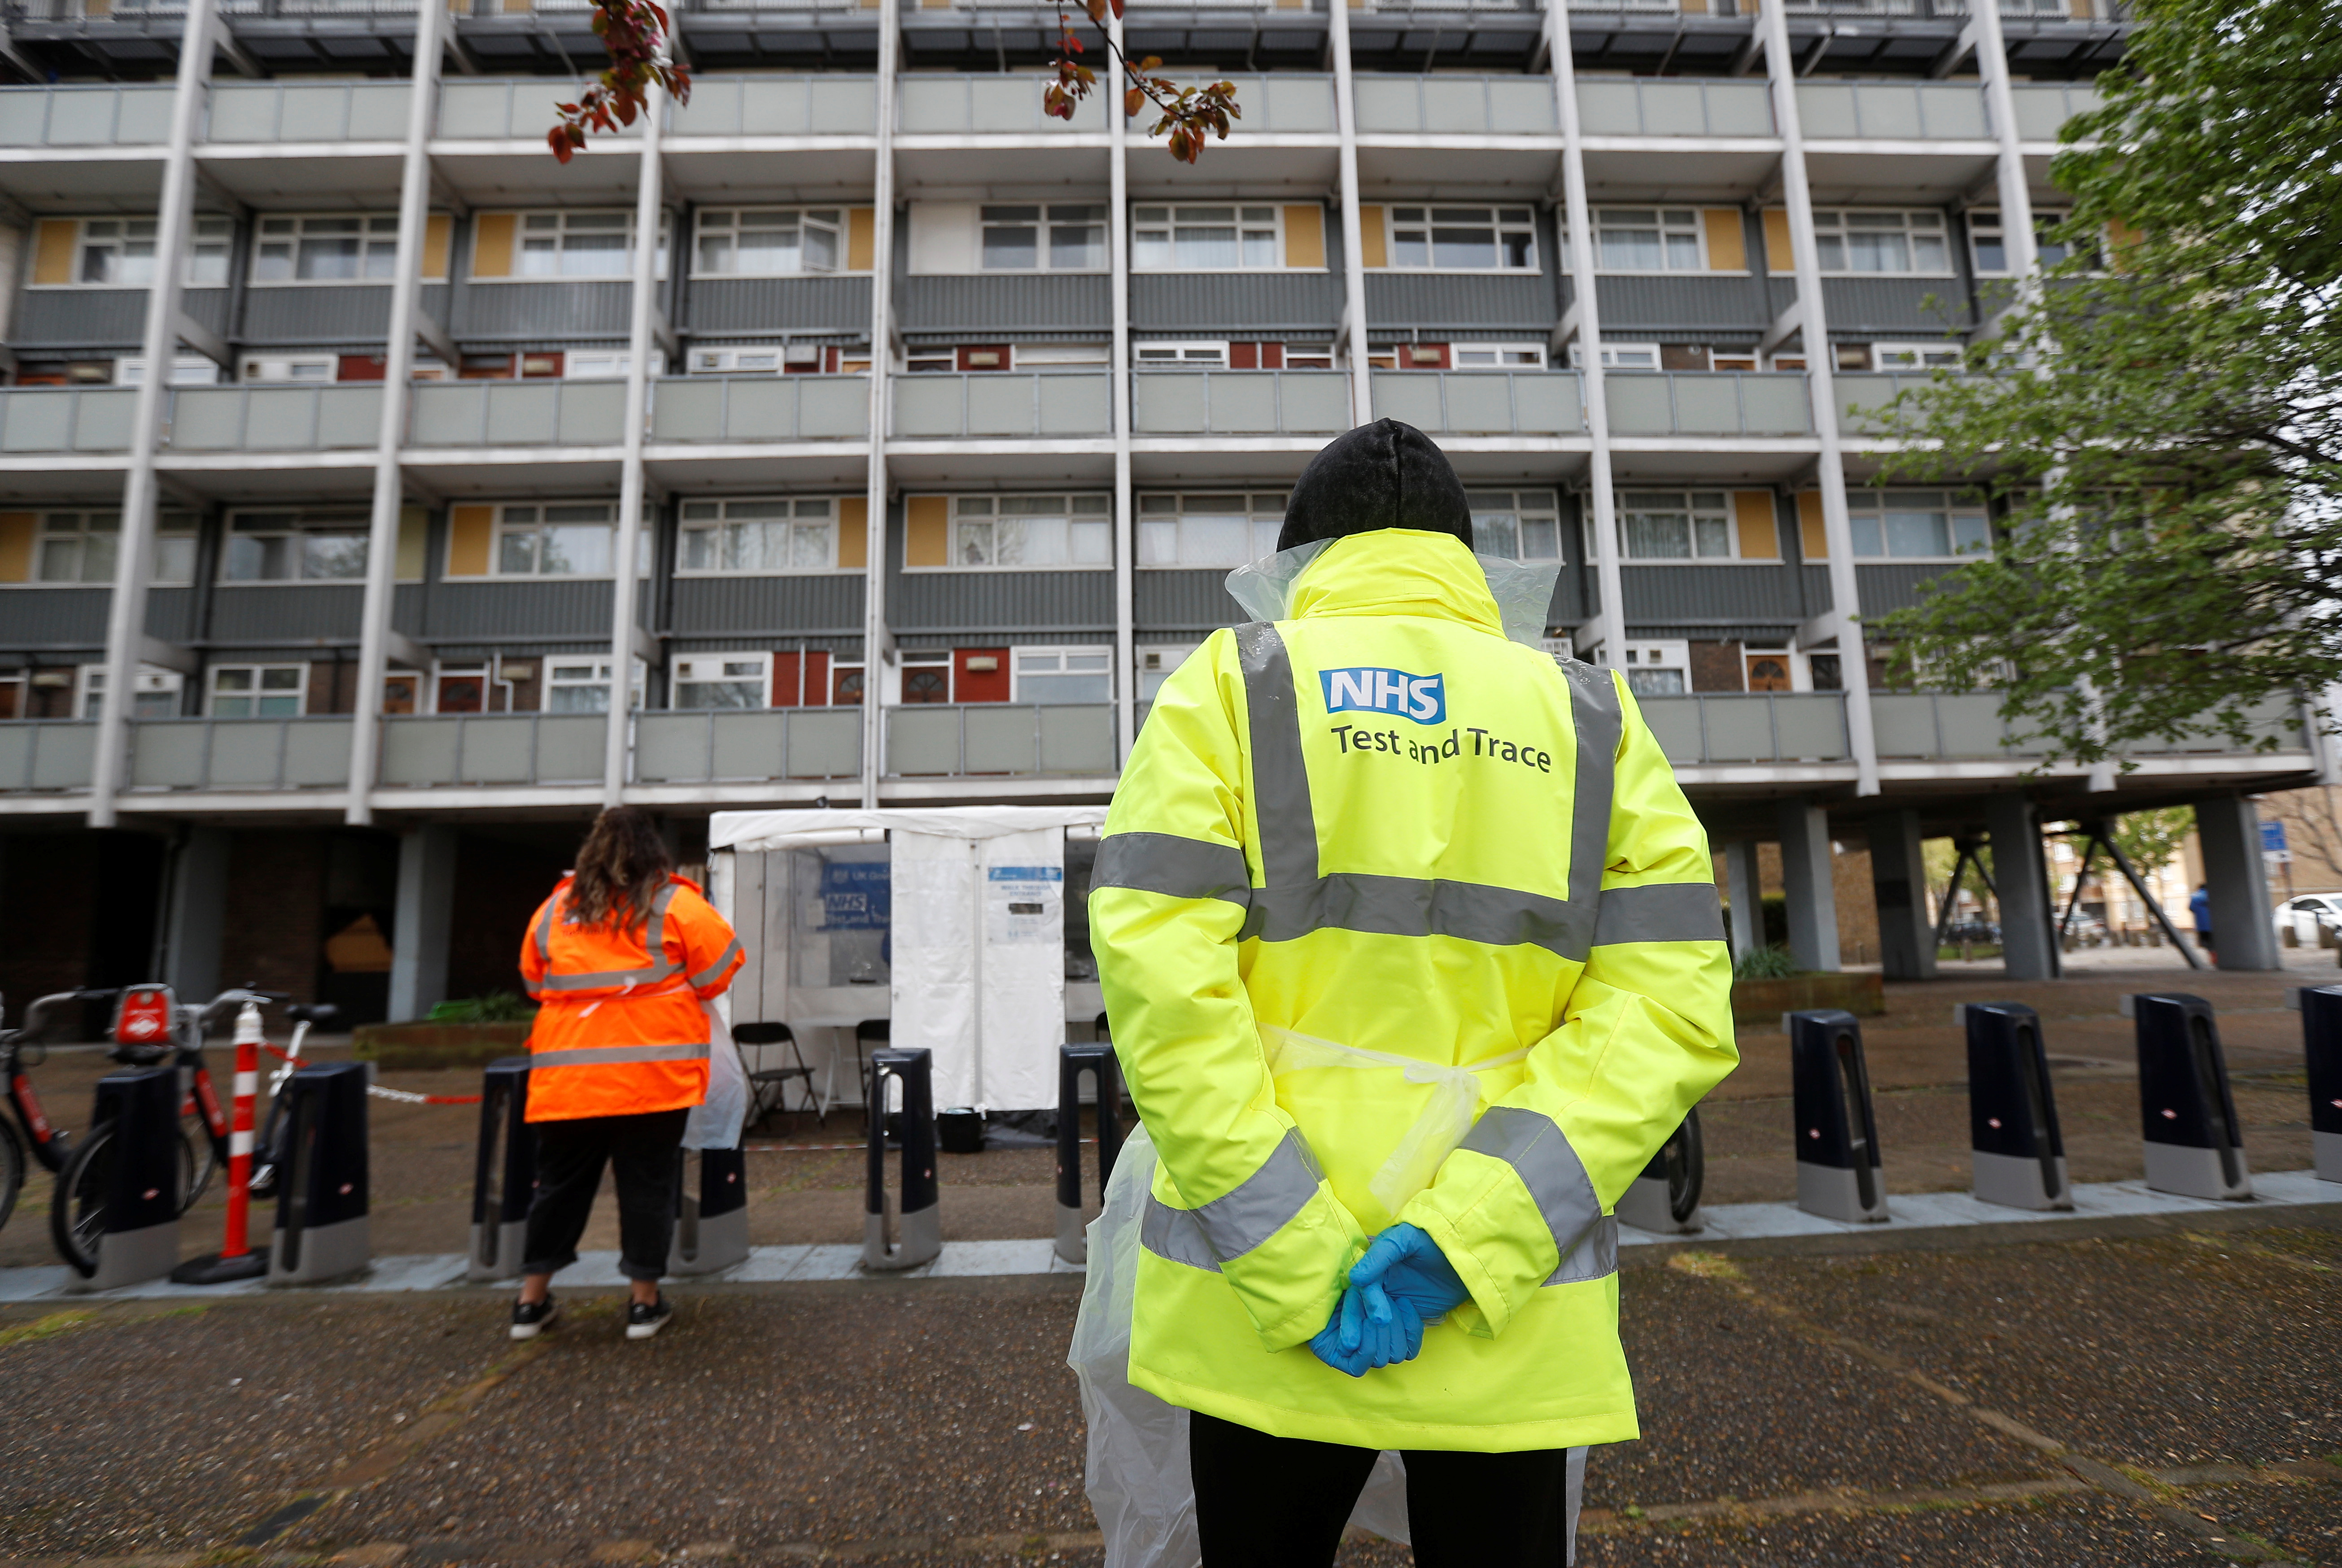 NHS workers stand near a coronavirus disease (COVID-19) mobile testing unit in Tower Hamlets, London, Britain, May 2, 2021. REUTERS/Peter Nicholls